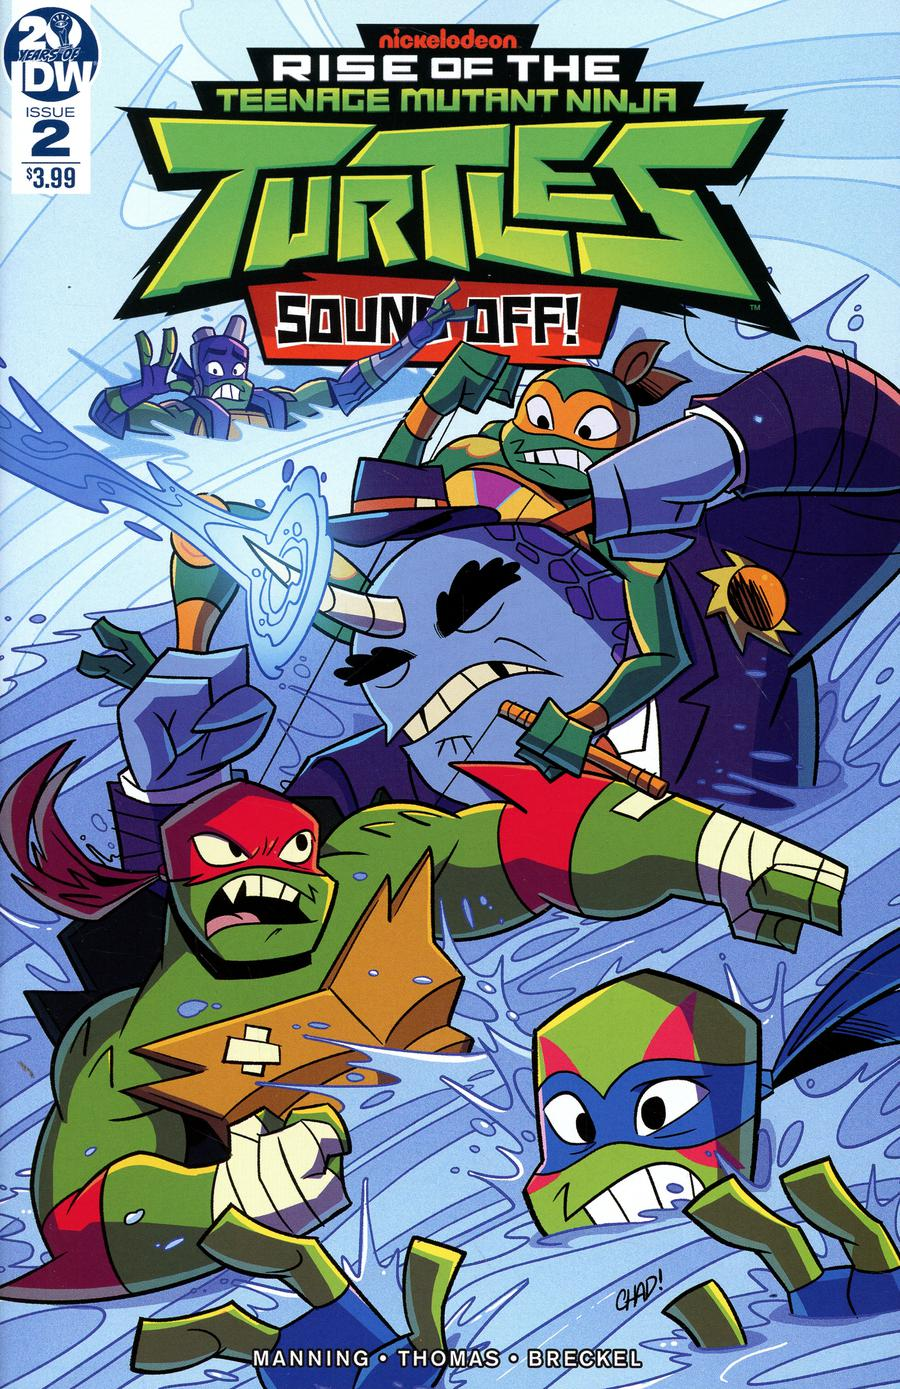 Rise Of The Teenage Mutant Ninja Turtles Sound Off #2 Cover A Regular Chad Thomas Cover